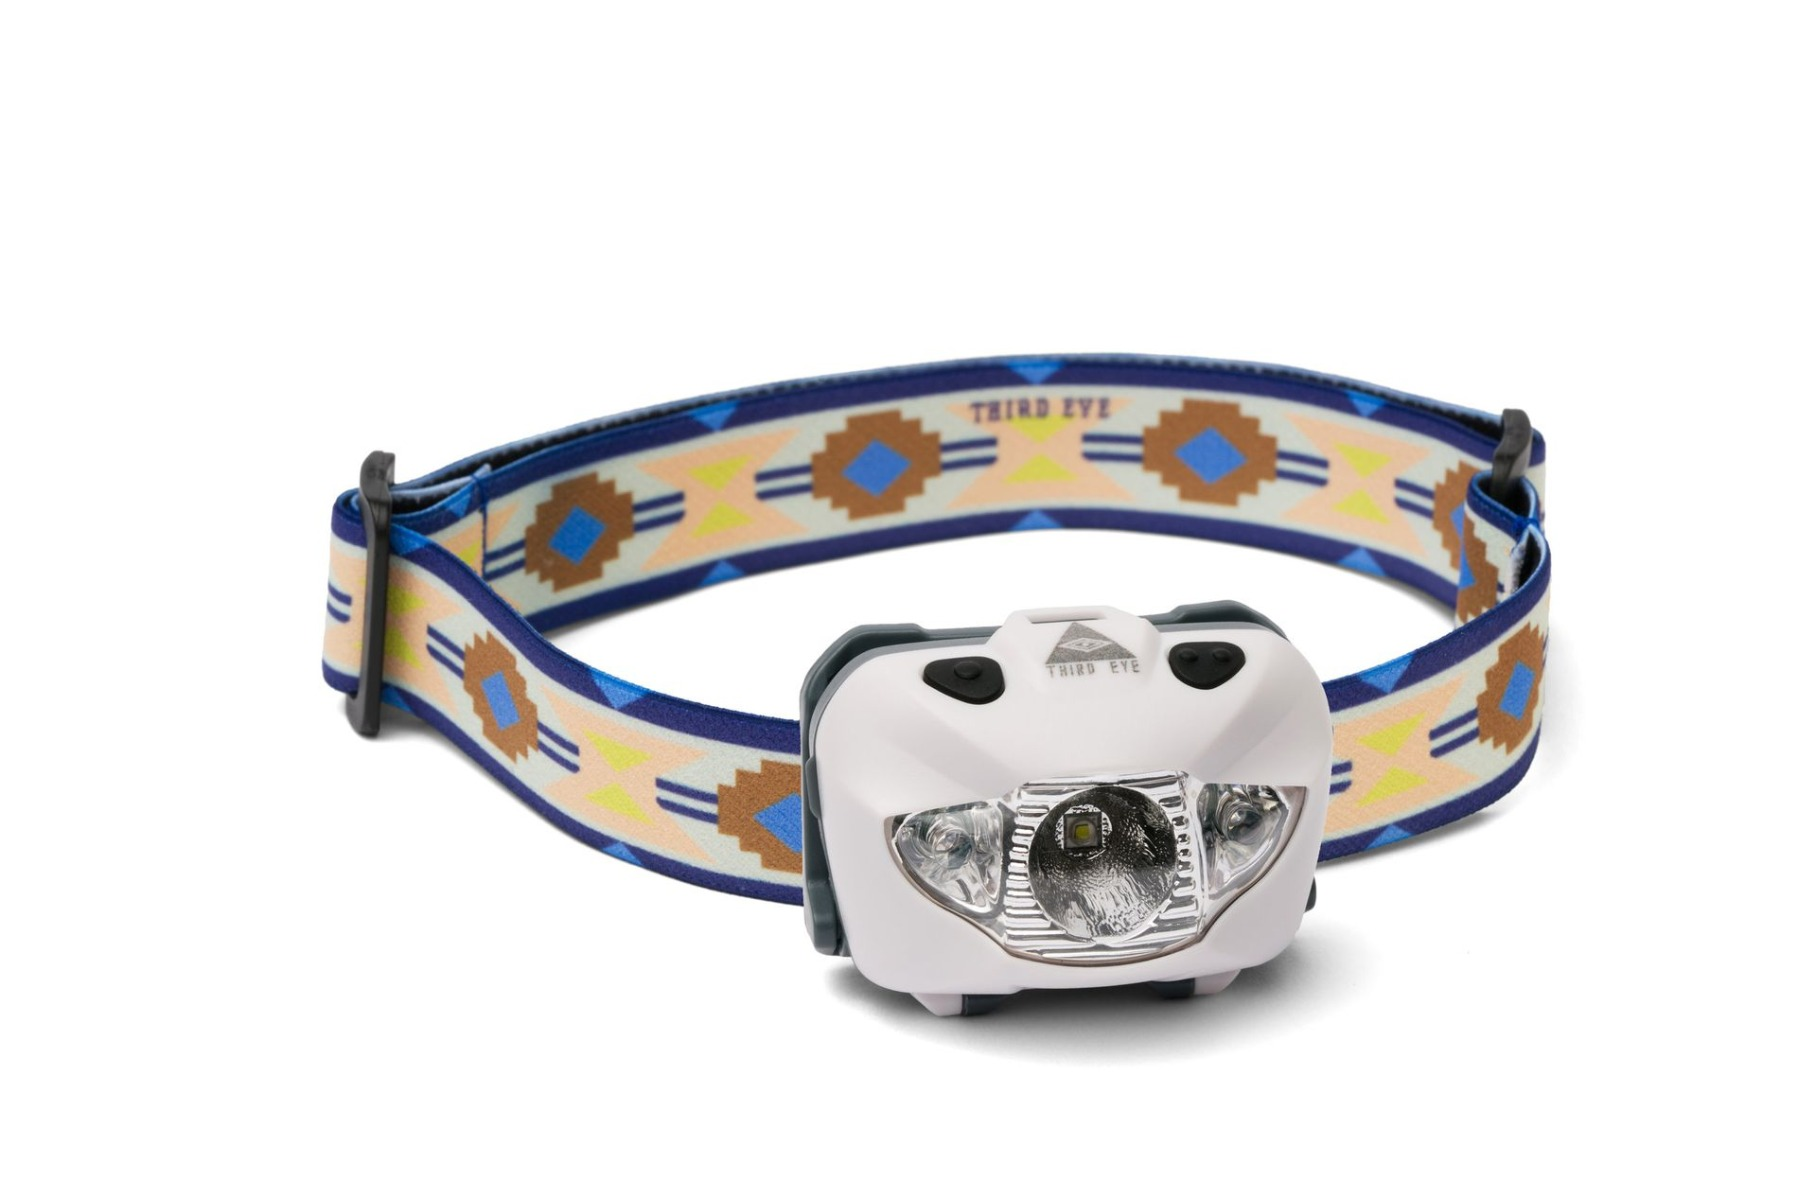 Third eye headlamp